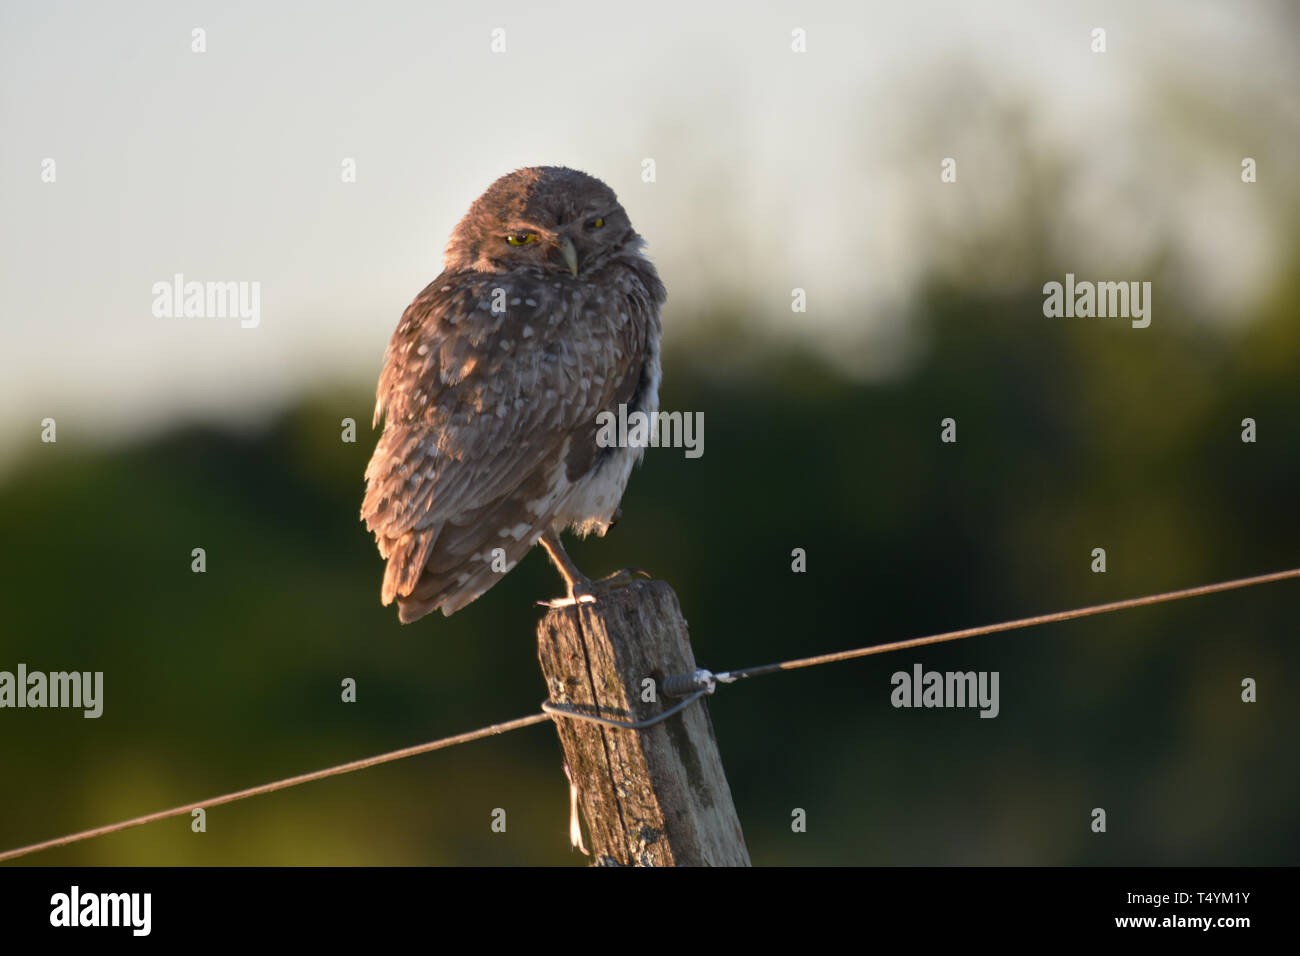 Burrowing Owl (Athene Cunicularia) sitting on a fence post - Stock Image